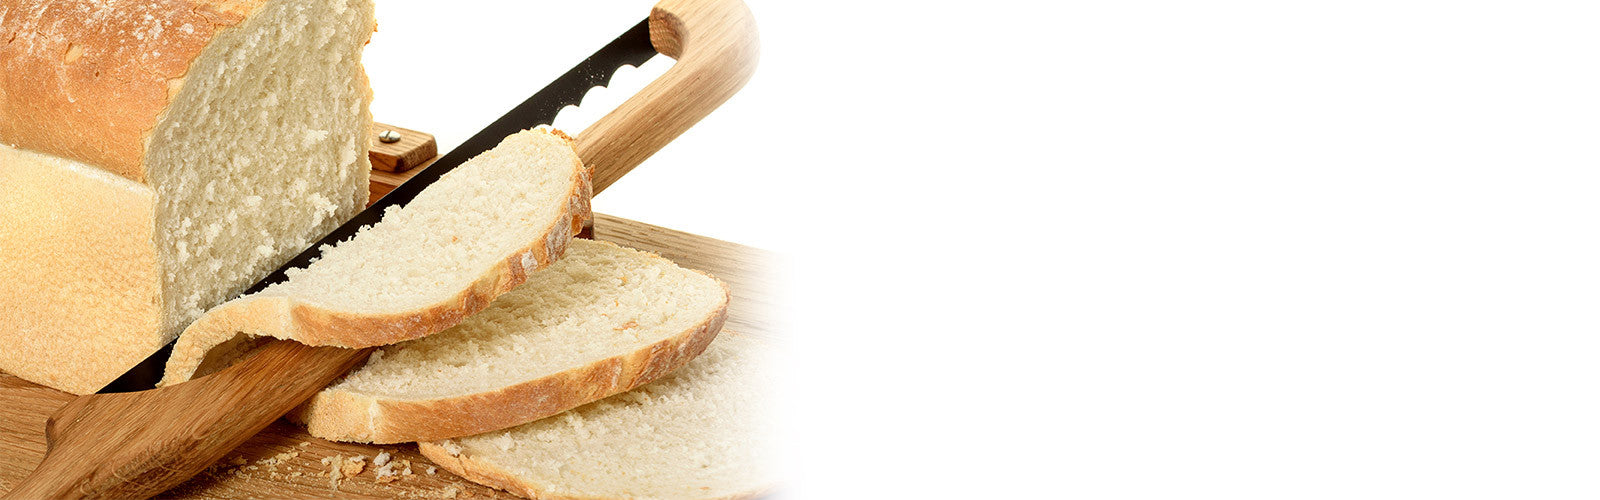 cleverly crafted bread boards and fiddle bow bread knives